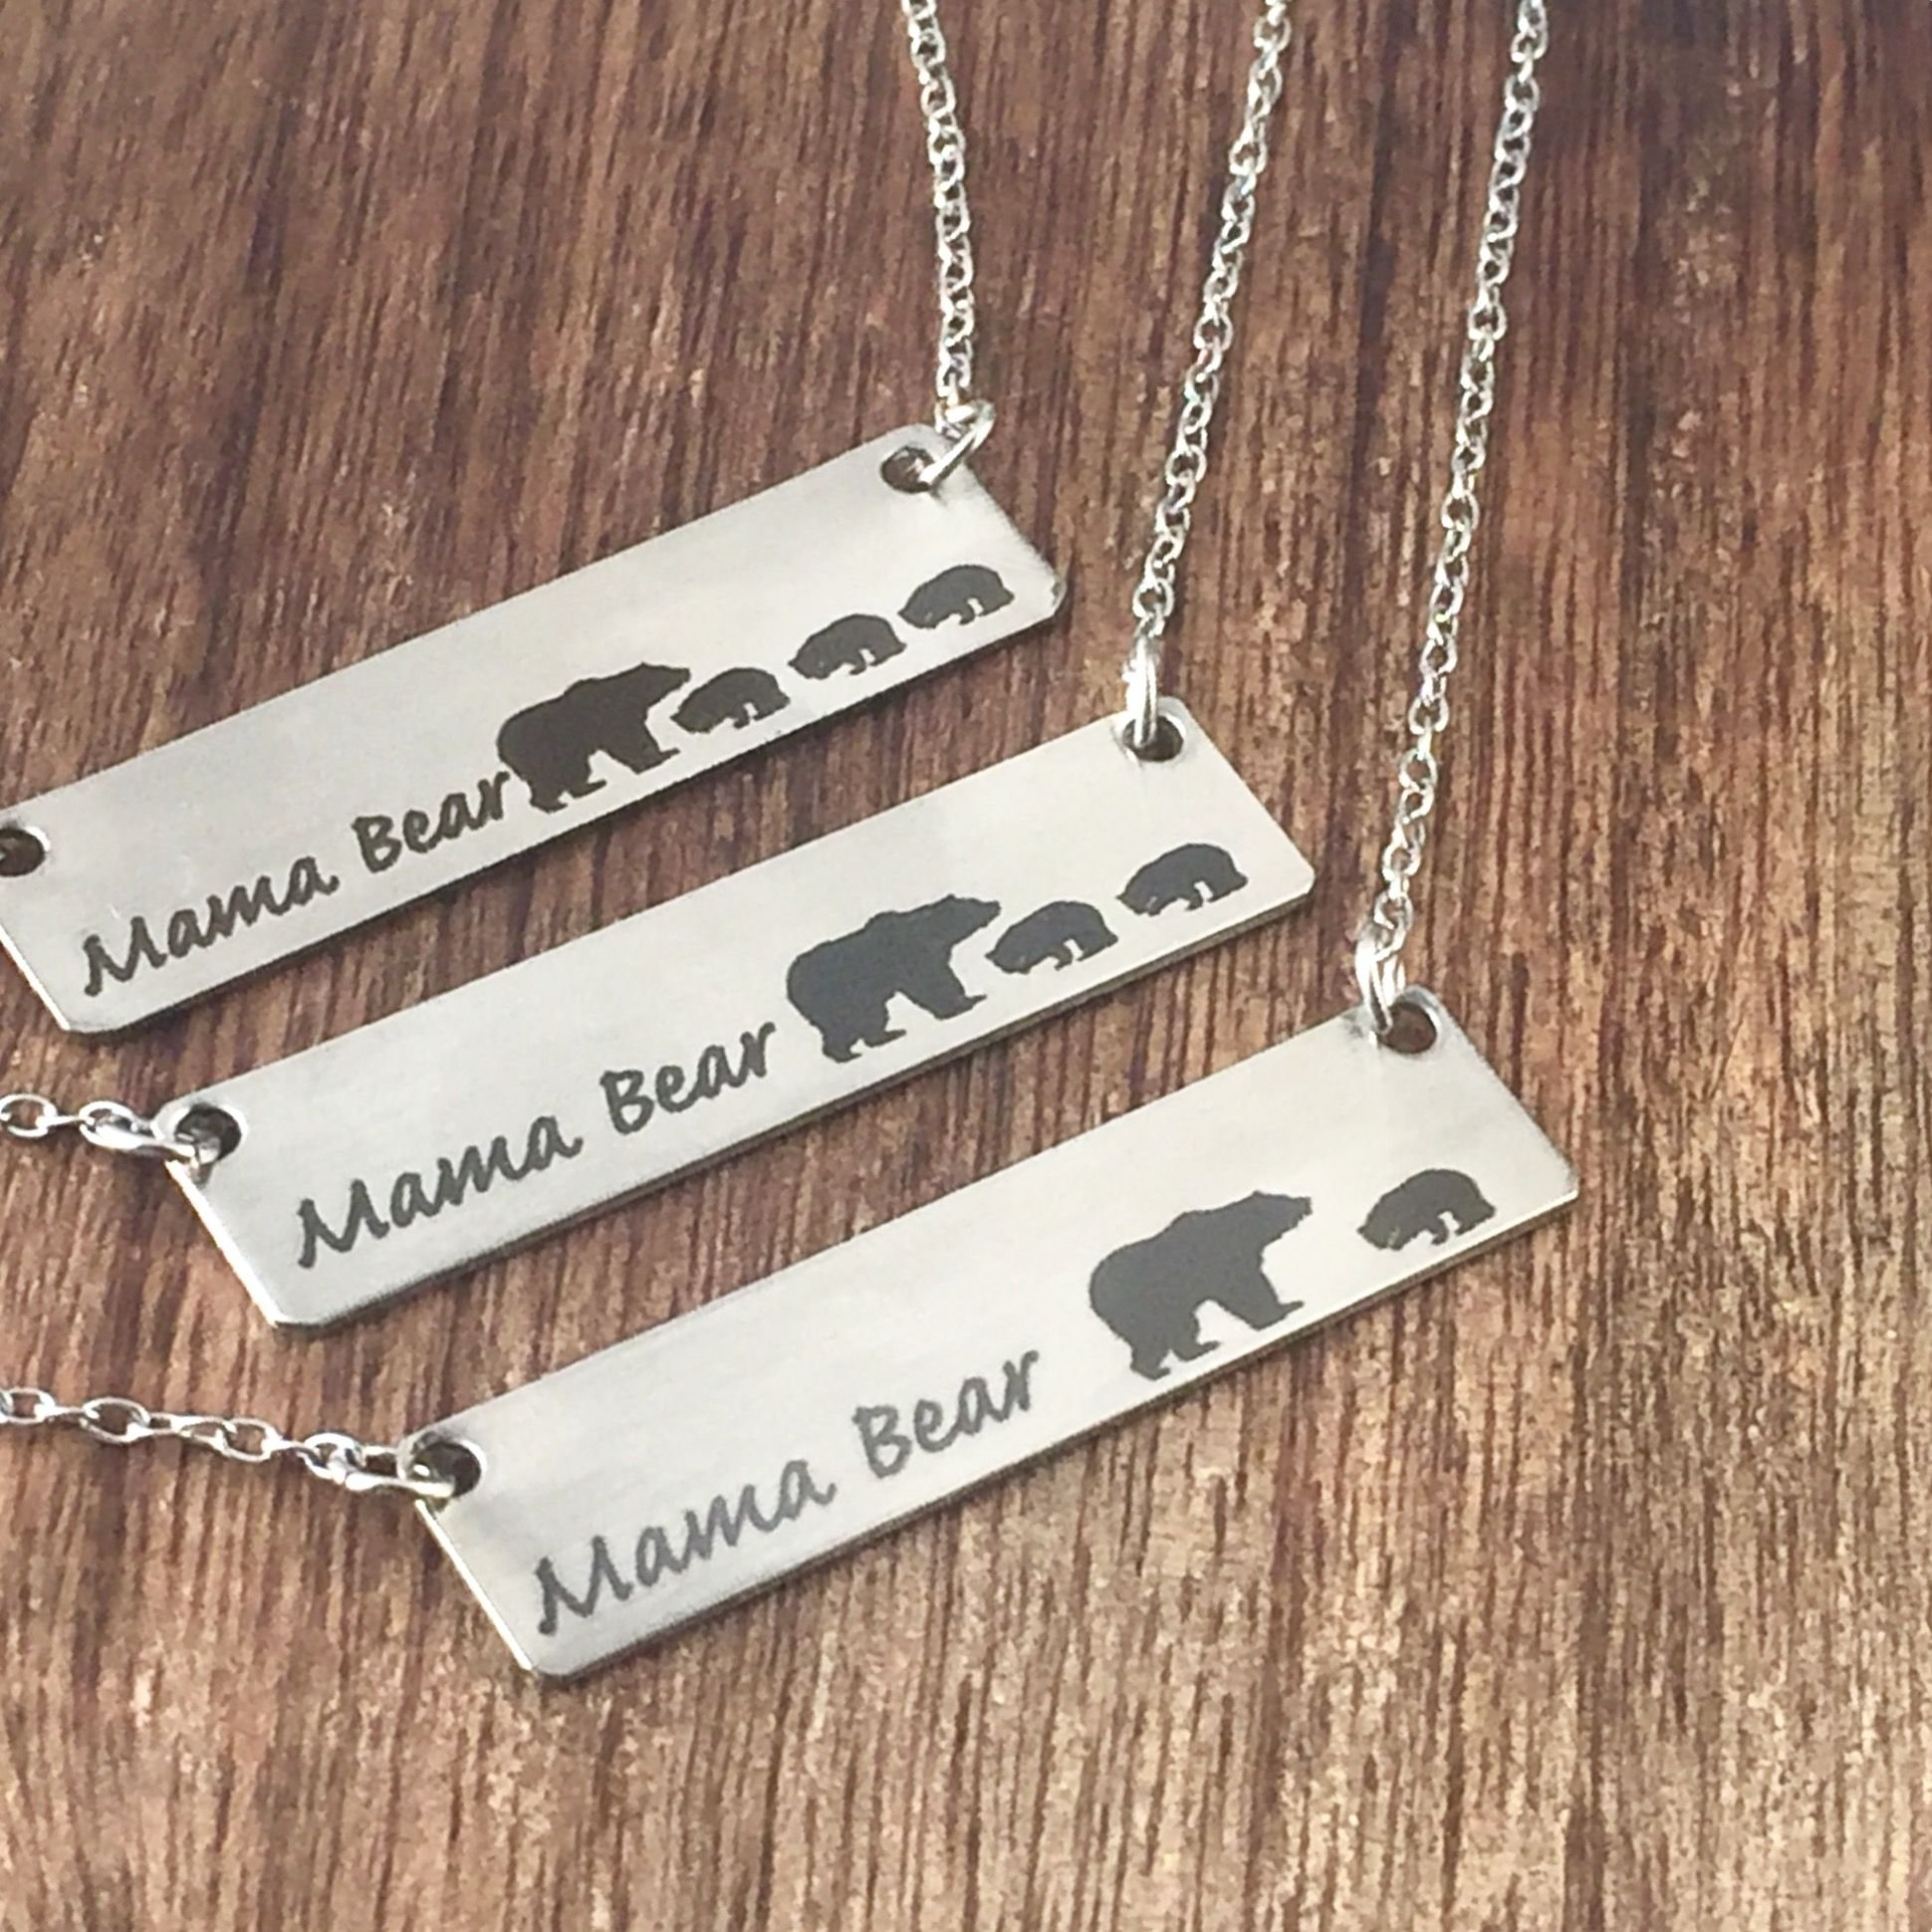 10 Perfect Birthday Gift Ideas For Wife mama bear necklace birthday gifts jewlery and jewerly